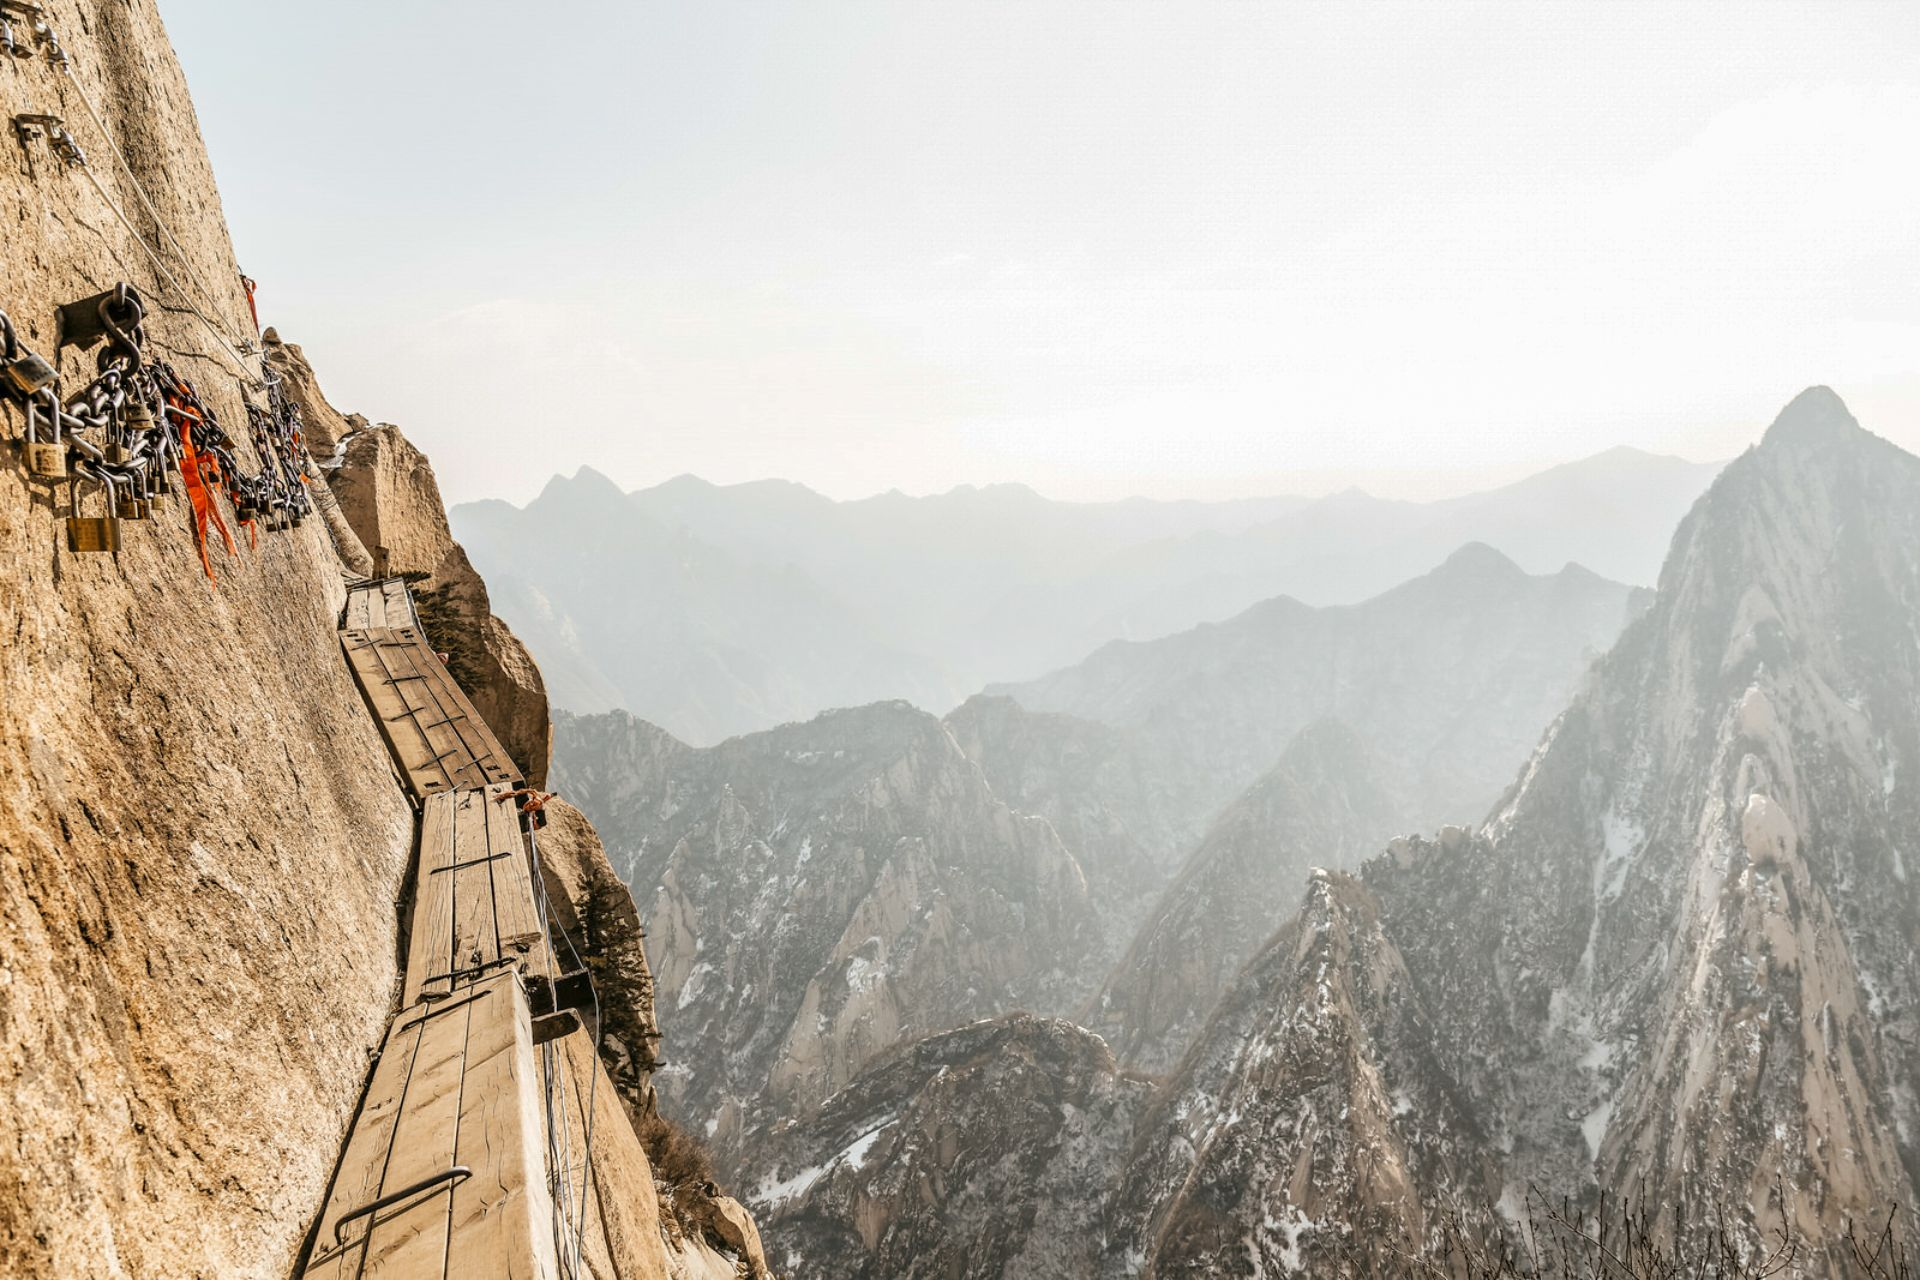 mount-hua-plankwalk-in-china-adrenaline-junkie-bucket-list